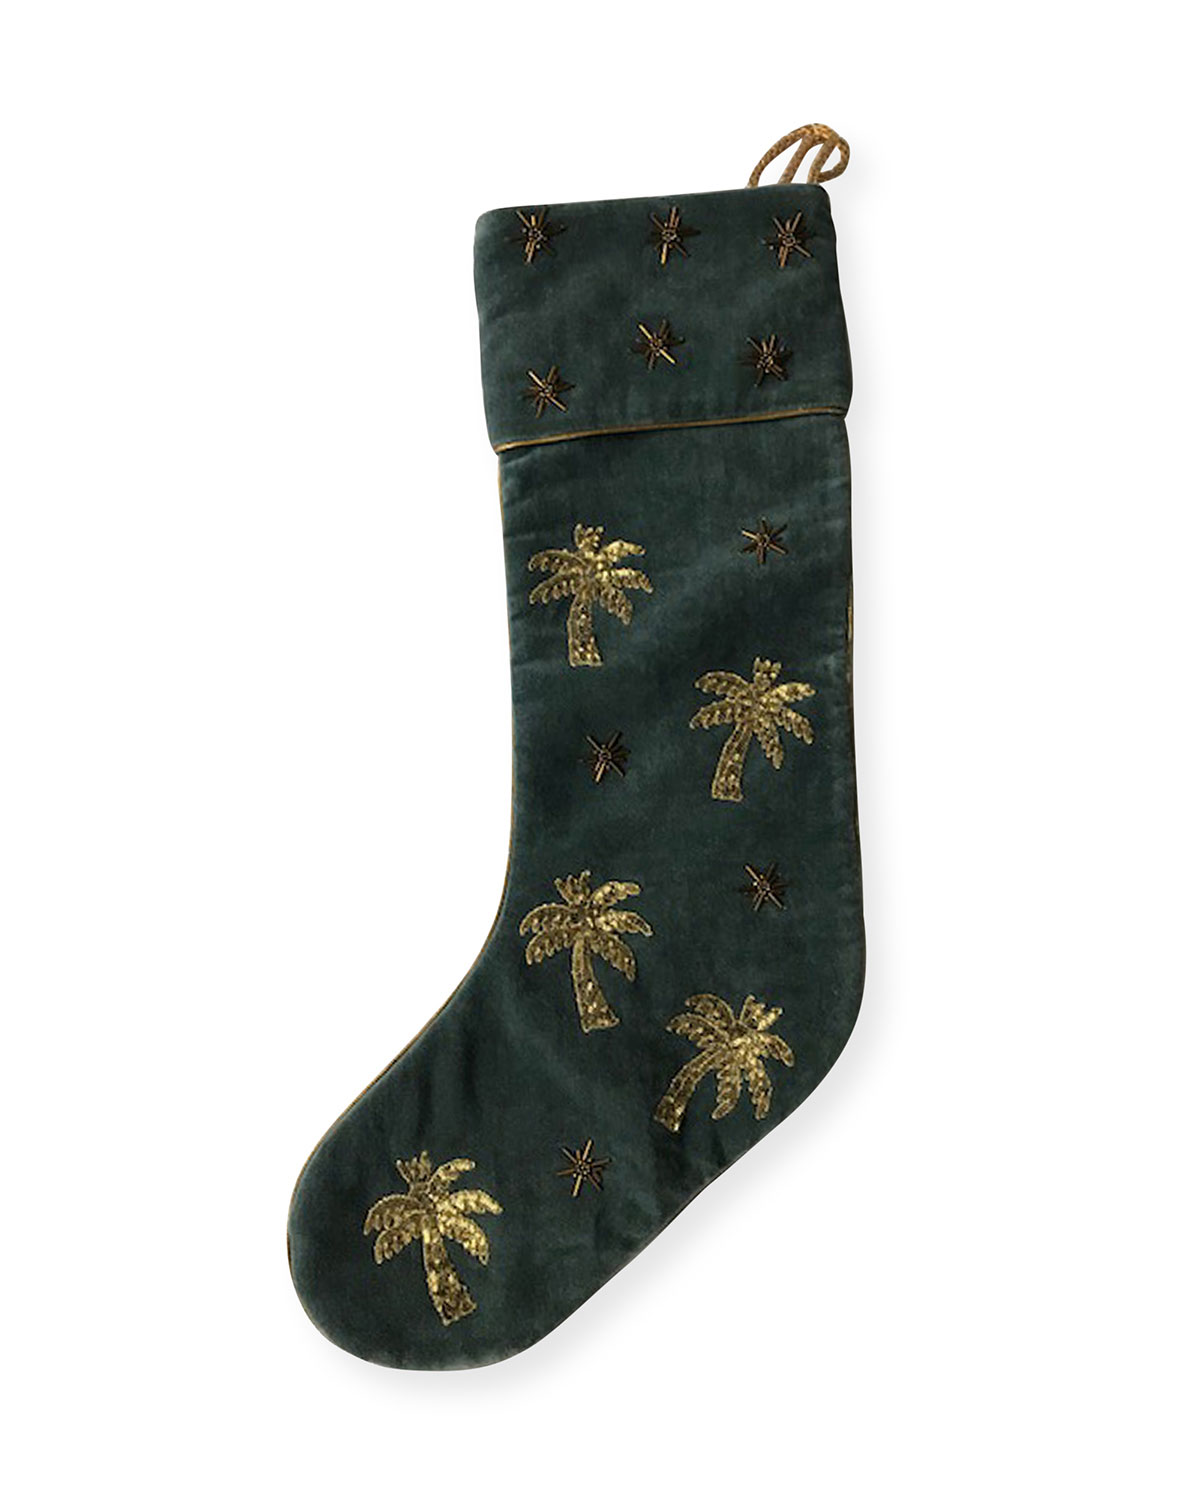 The best luxury holiday stockings this season